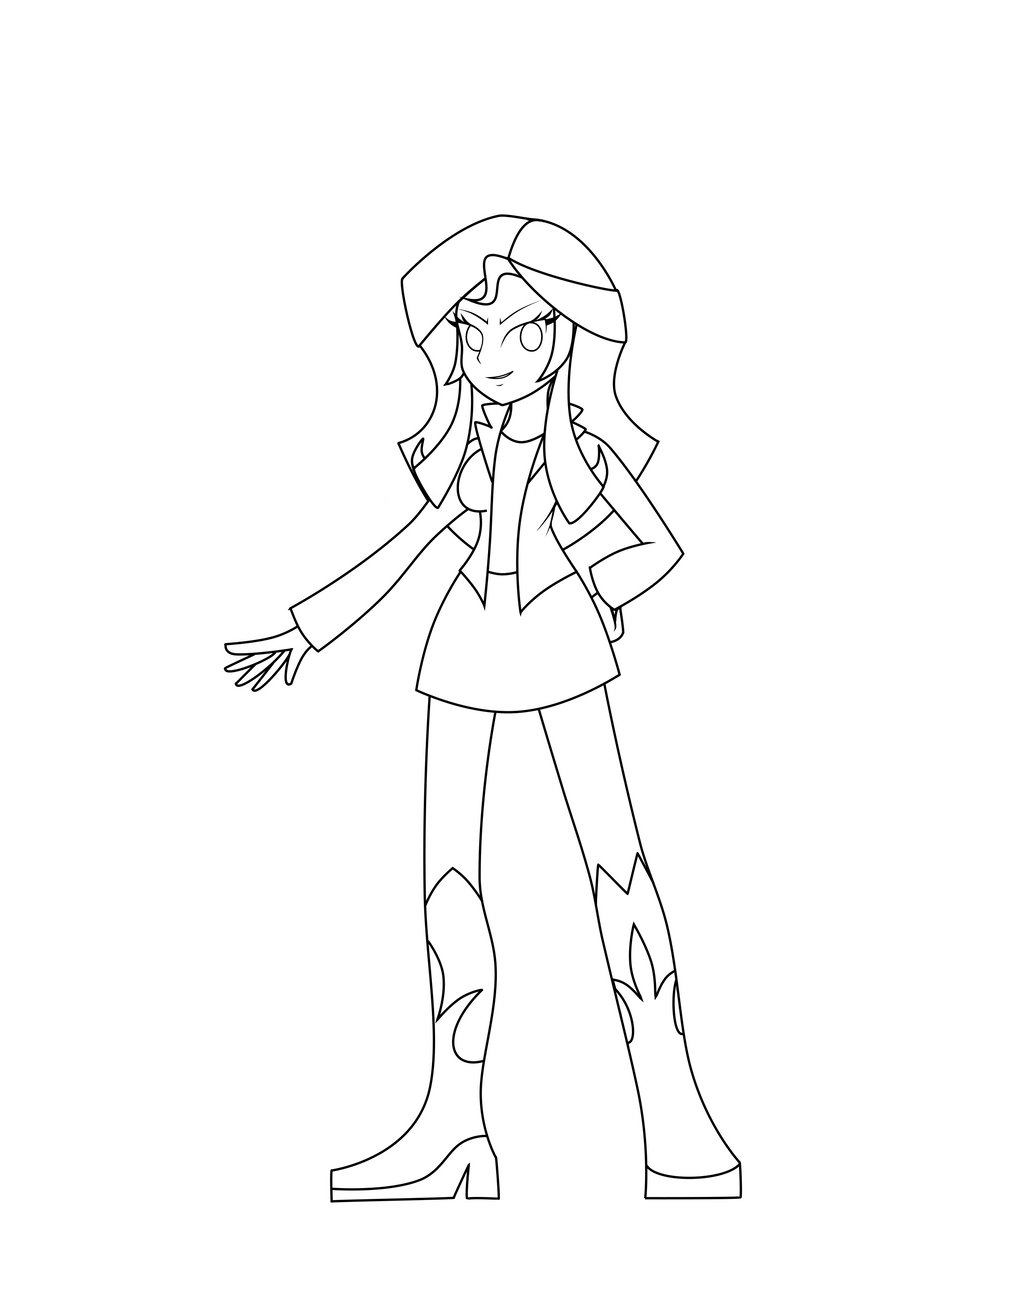 equestria girls sunset shimmer lineart by darkengales on